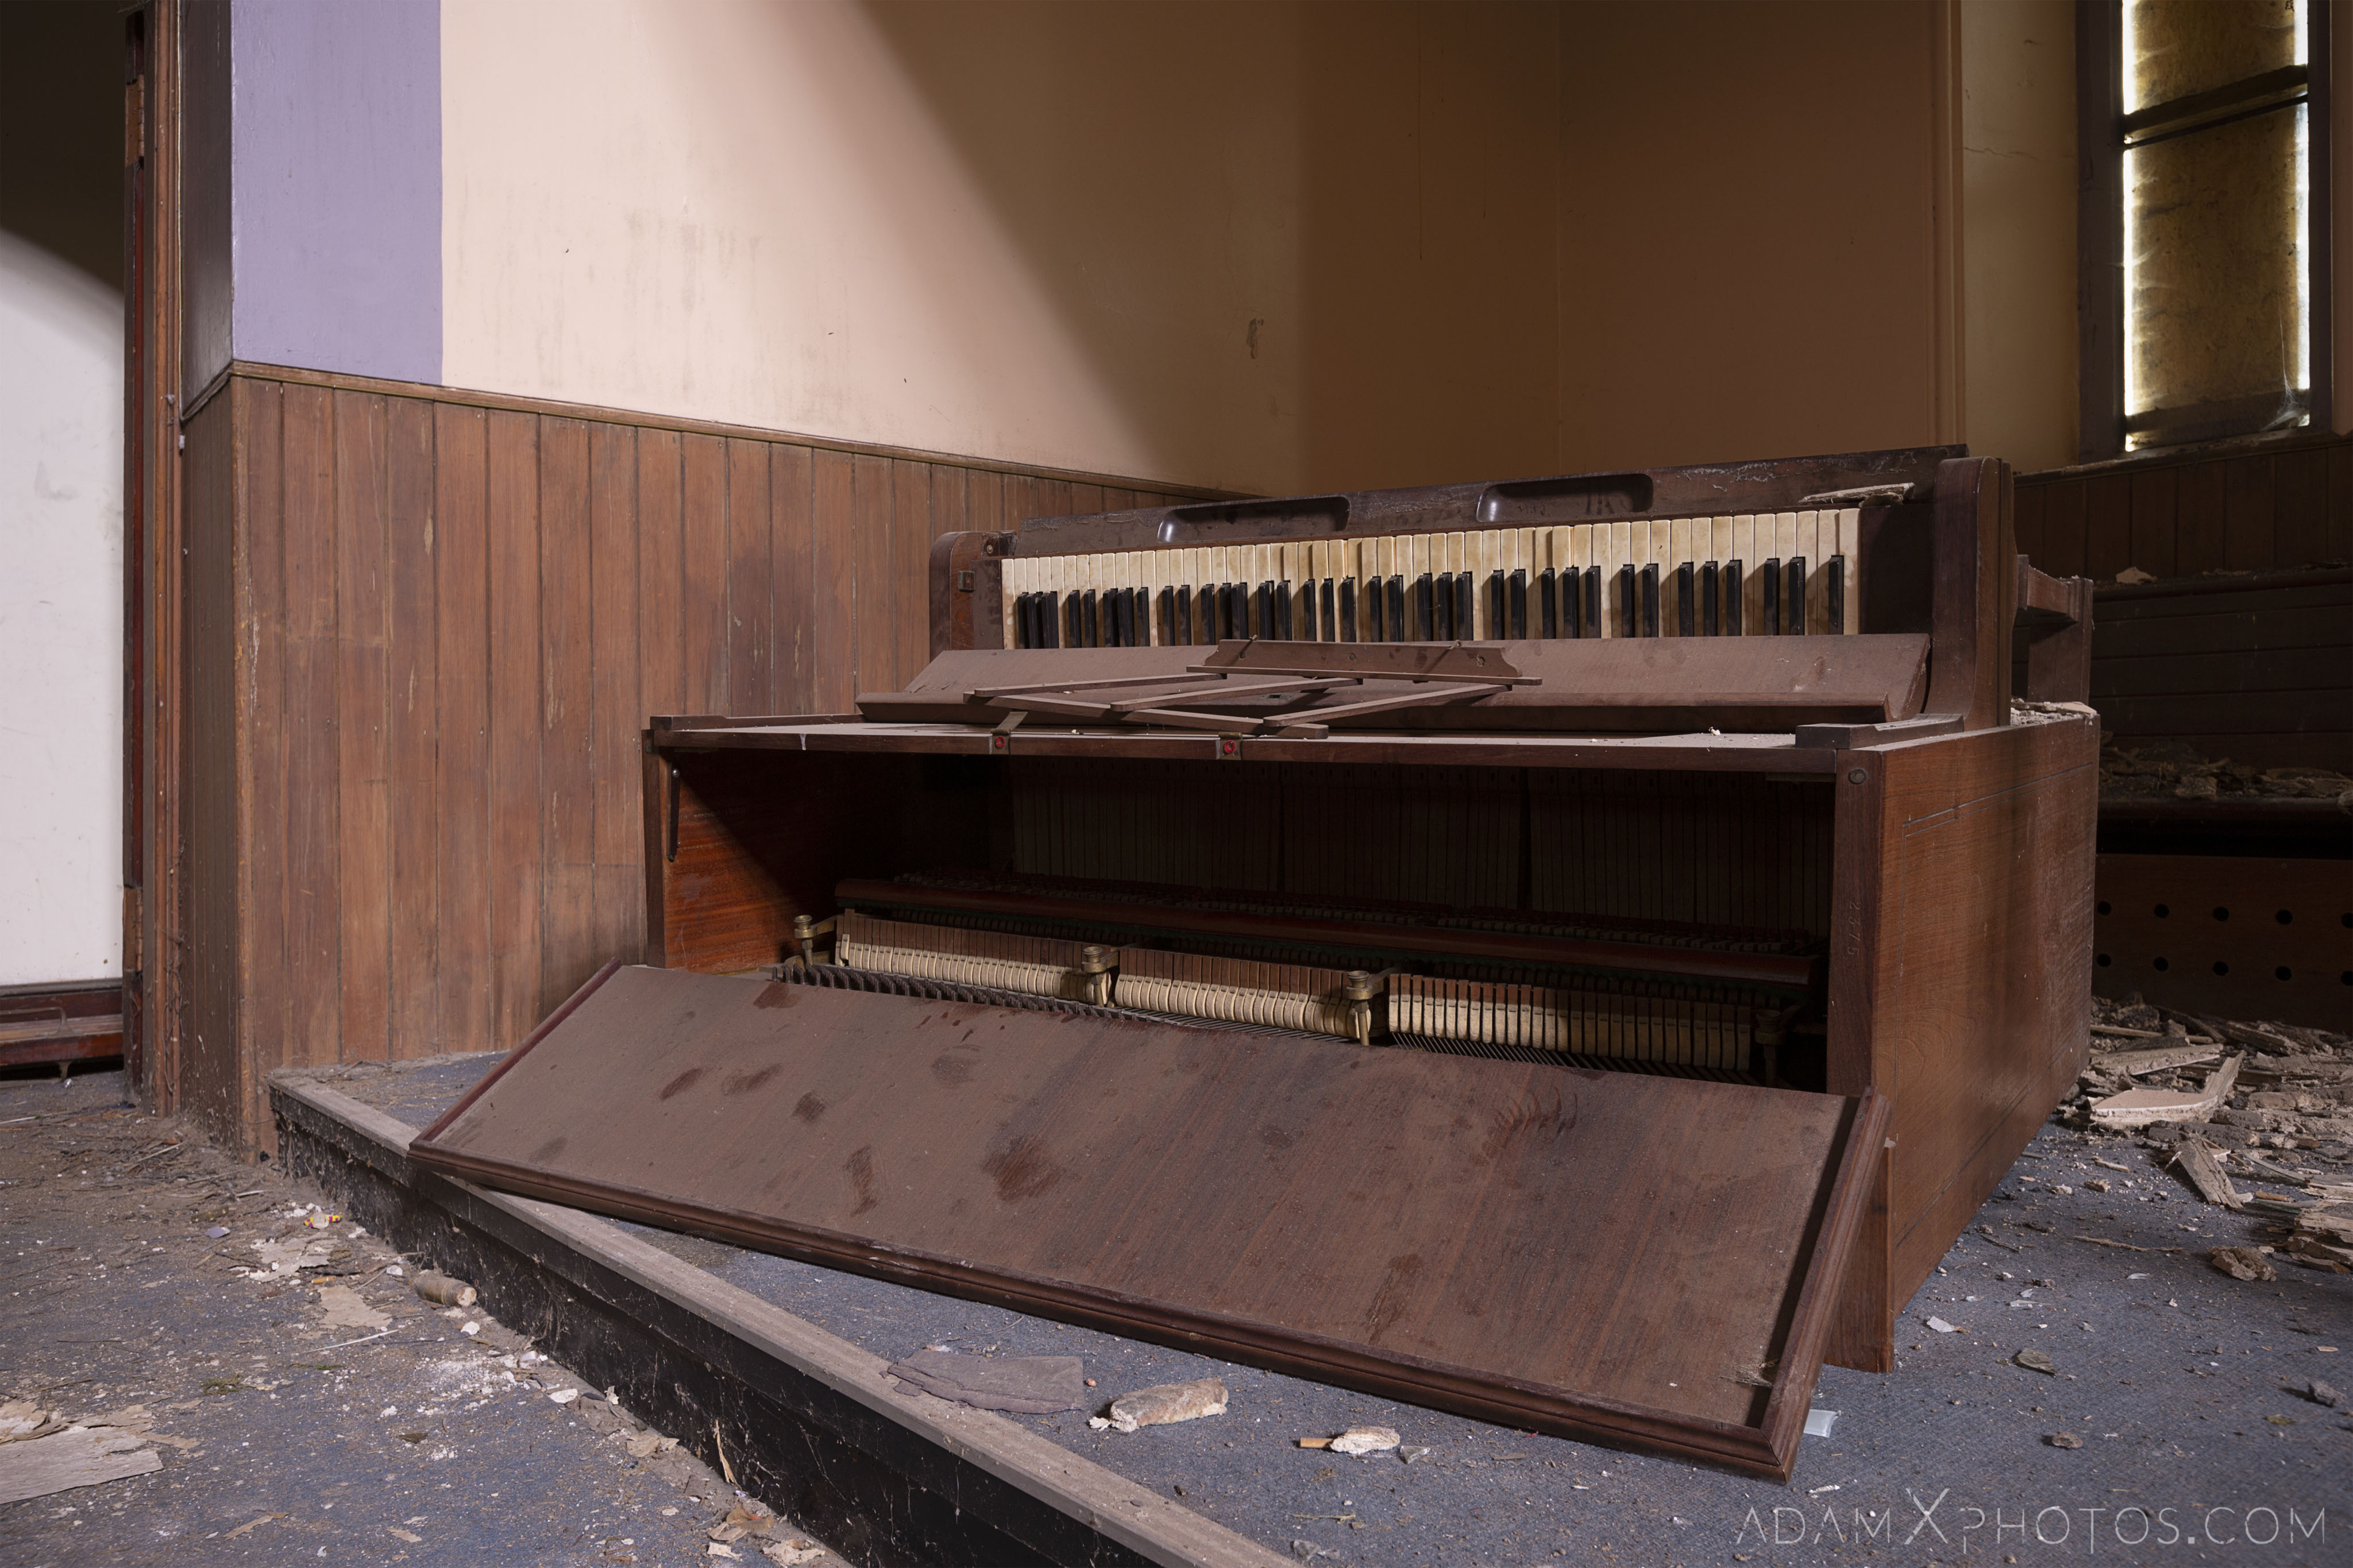 Old Piano Main Hall stained glass windows wooden balcony pews St Aidan's Church Galashiels Scotland Circle Church Adam X Urbex Urban Exploration Access 2018 Abandoned decay ruins lost forgotten derelict location creepy haunting eerie